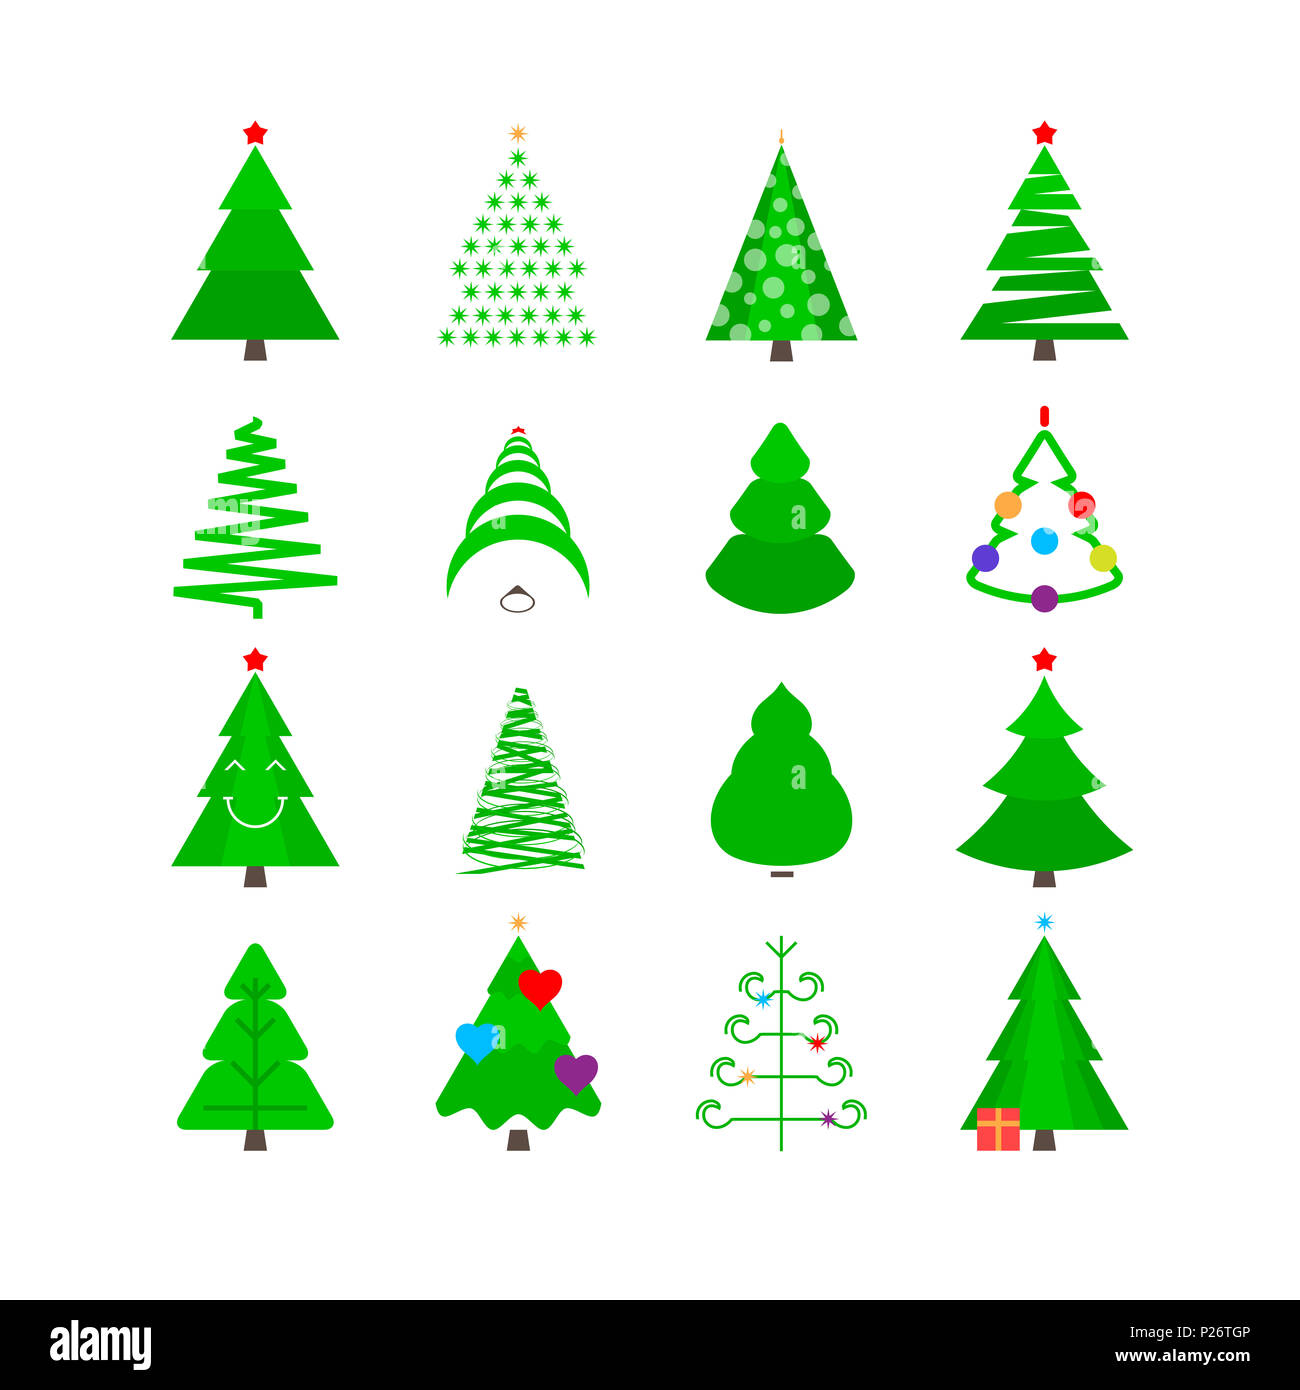 green christmas tree icon set stylized fir trees of different shapes isolated on white - Different Kinds Of Christmas Trees